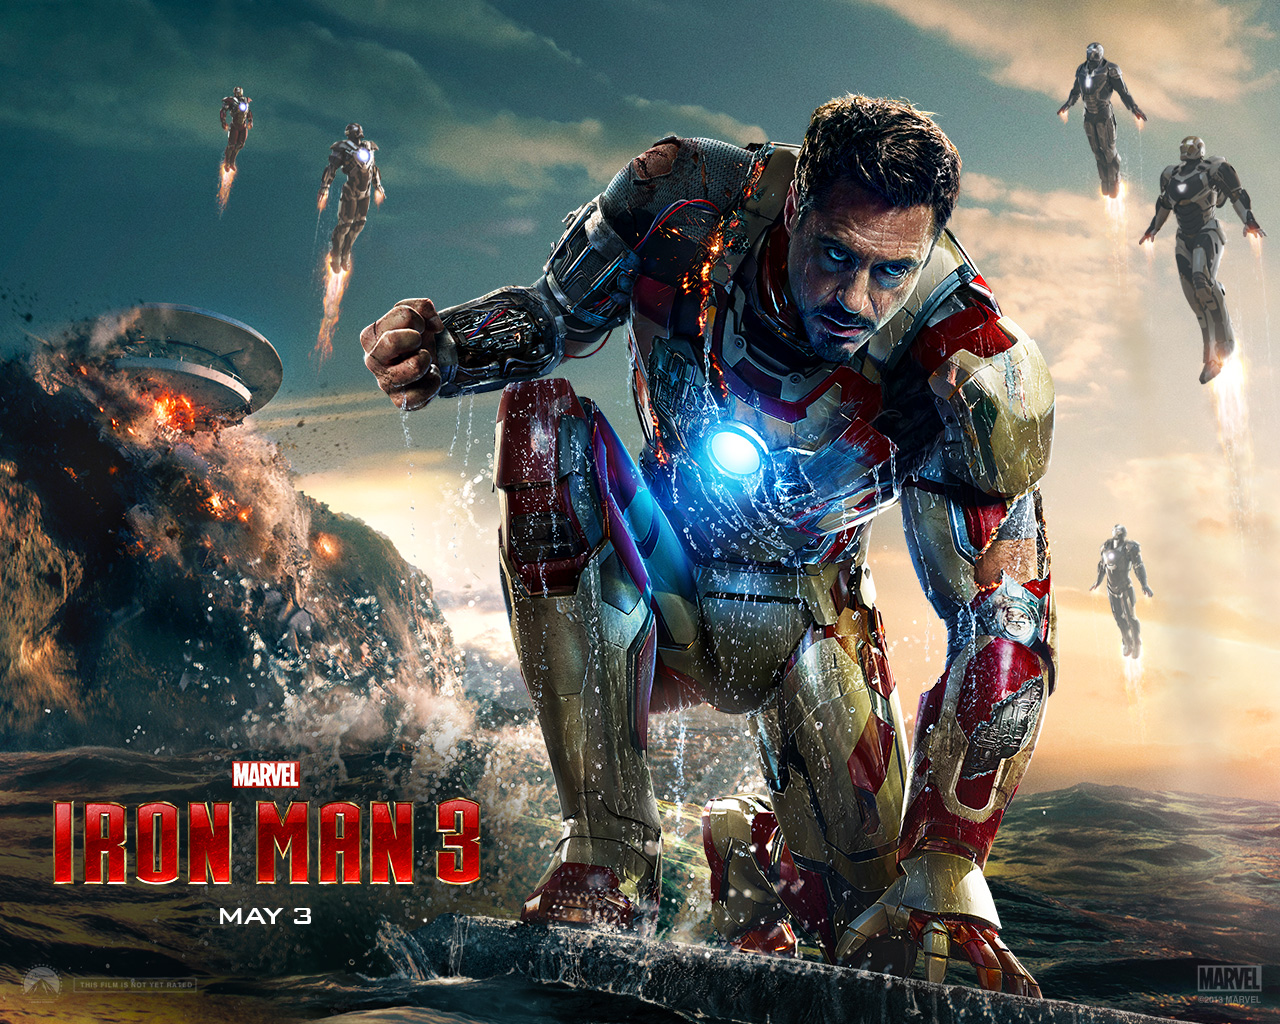 Iron Man Wallpapers: Free Download Official Iron Man 3 Movie Wallpapers